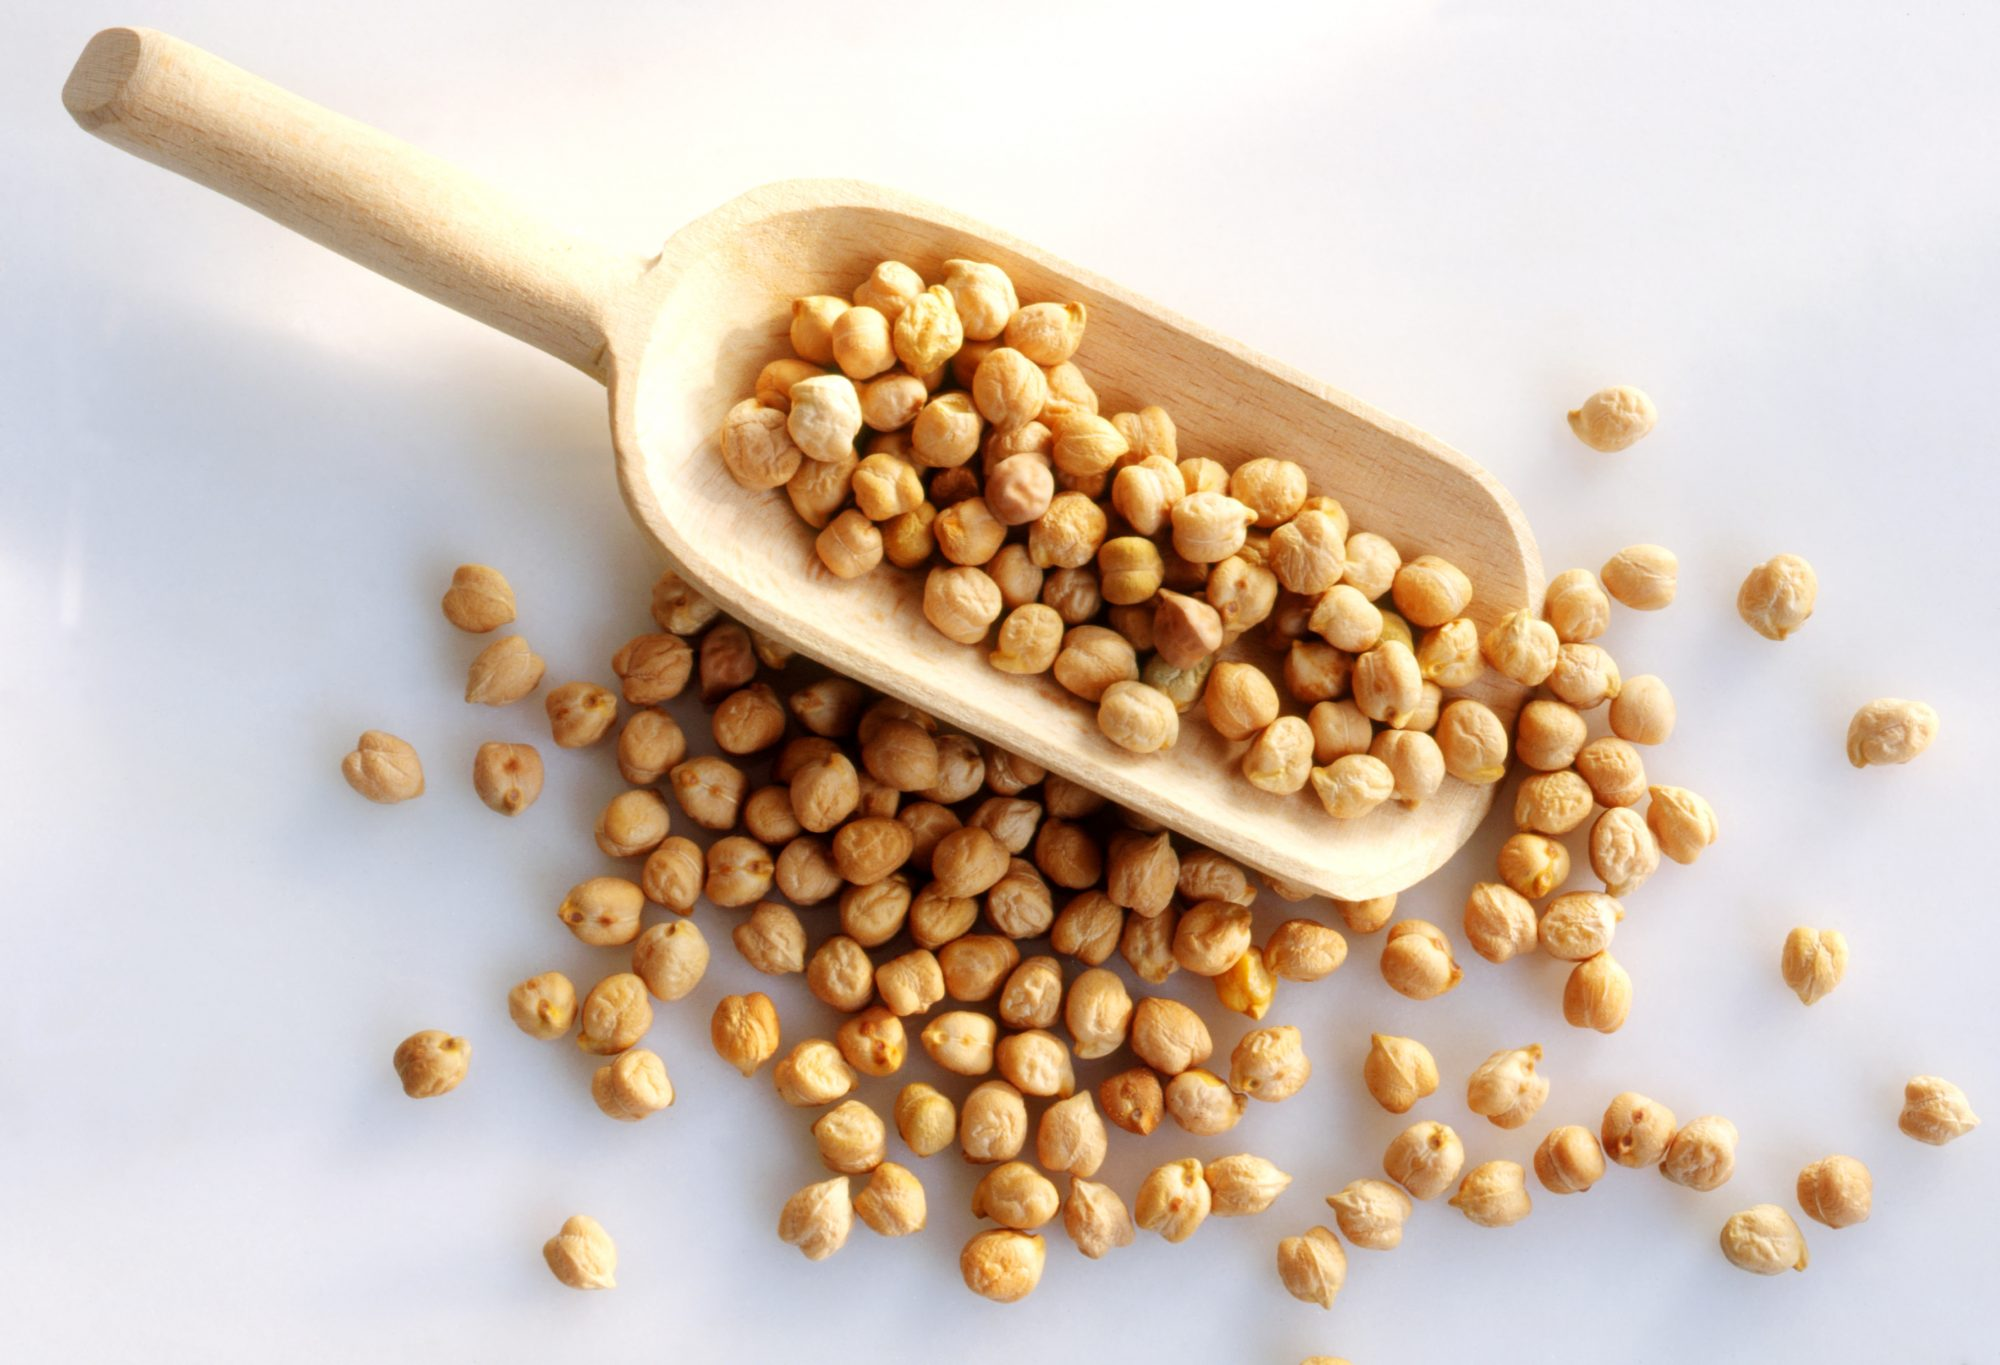 Chickpeas Getty 7/25/19